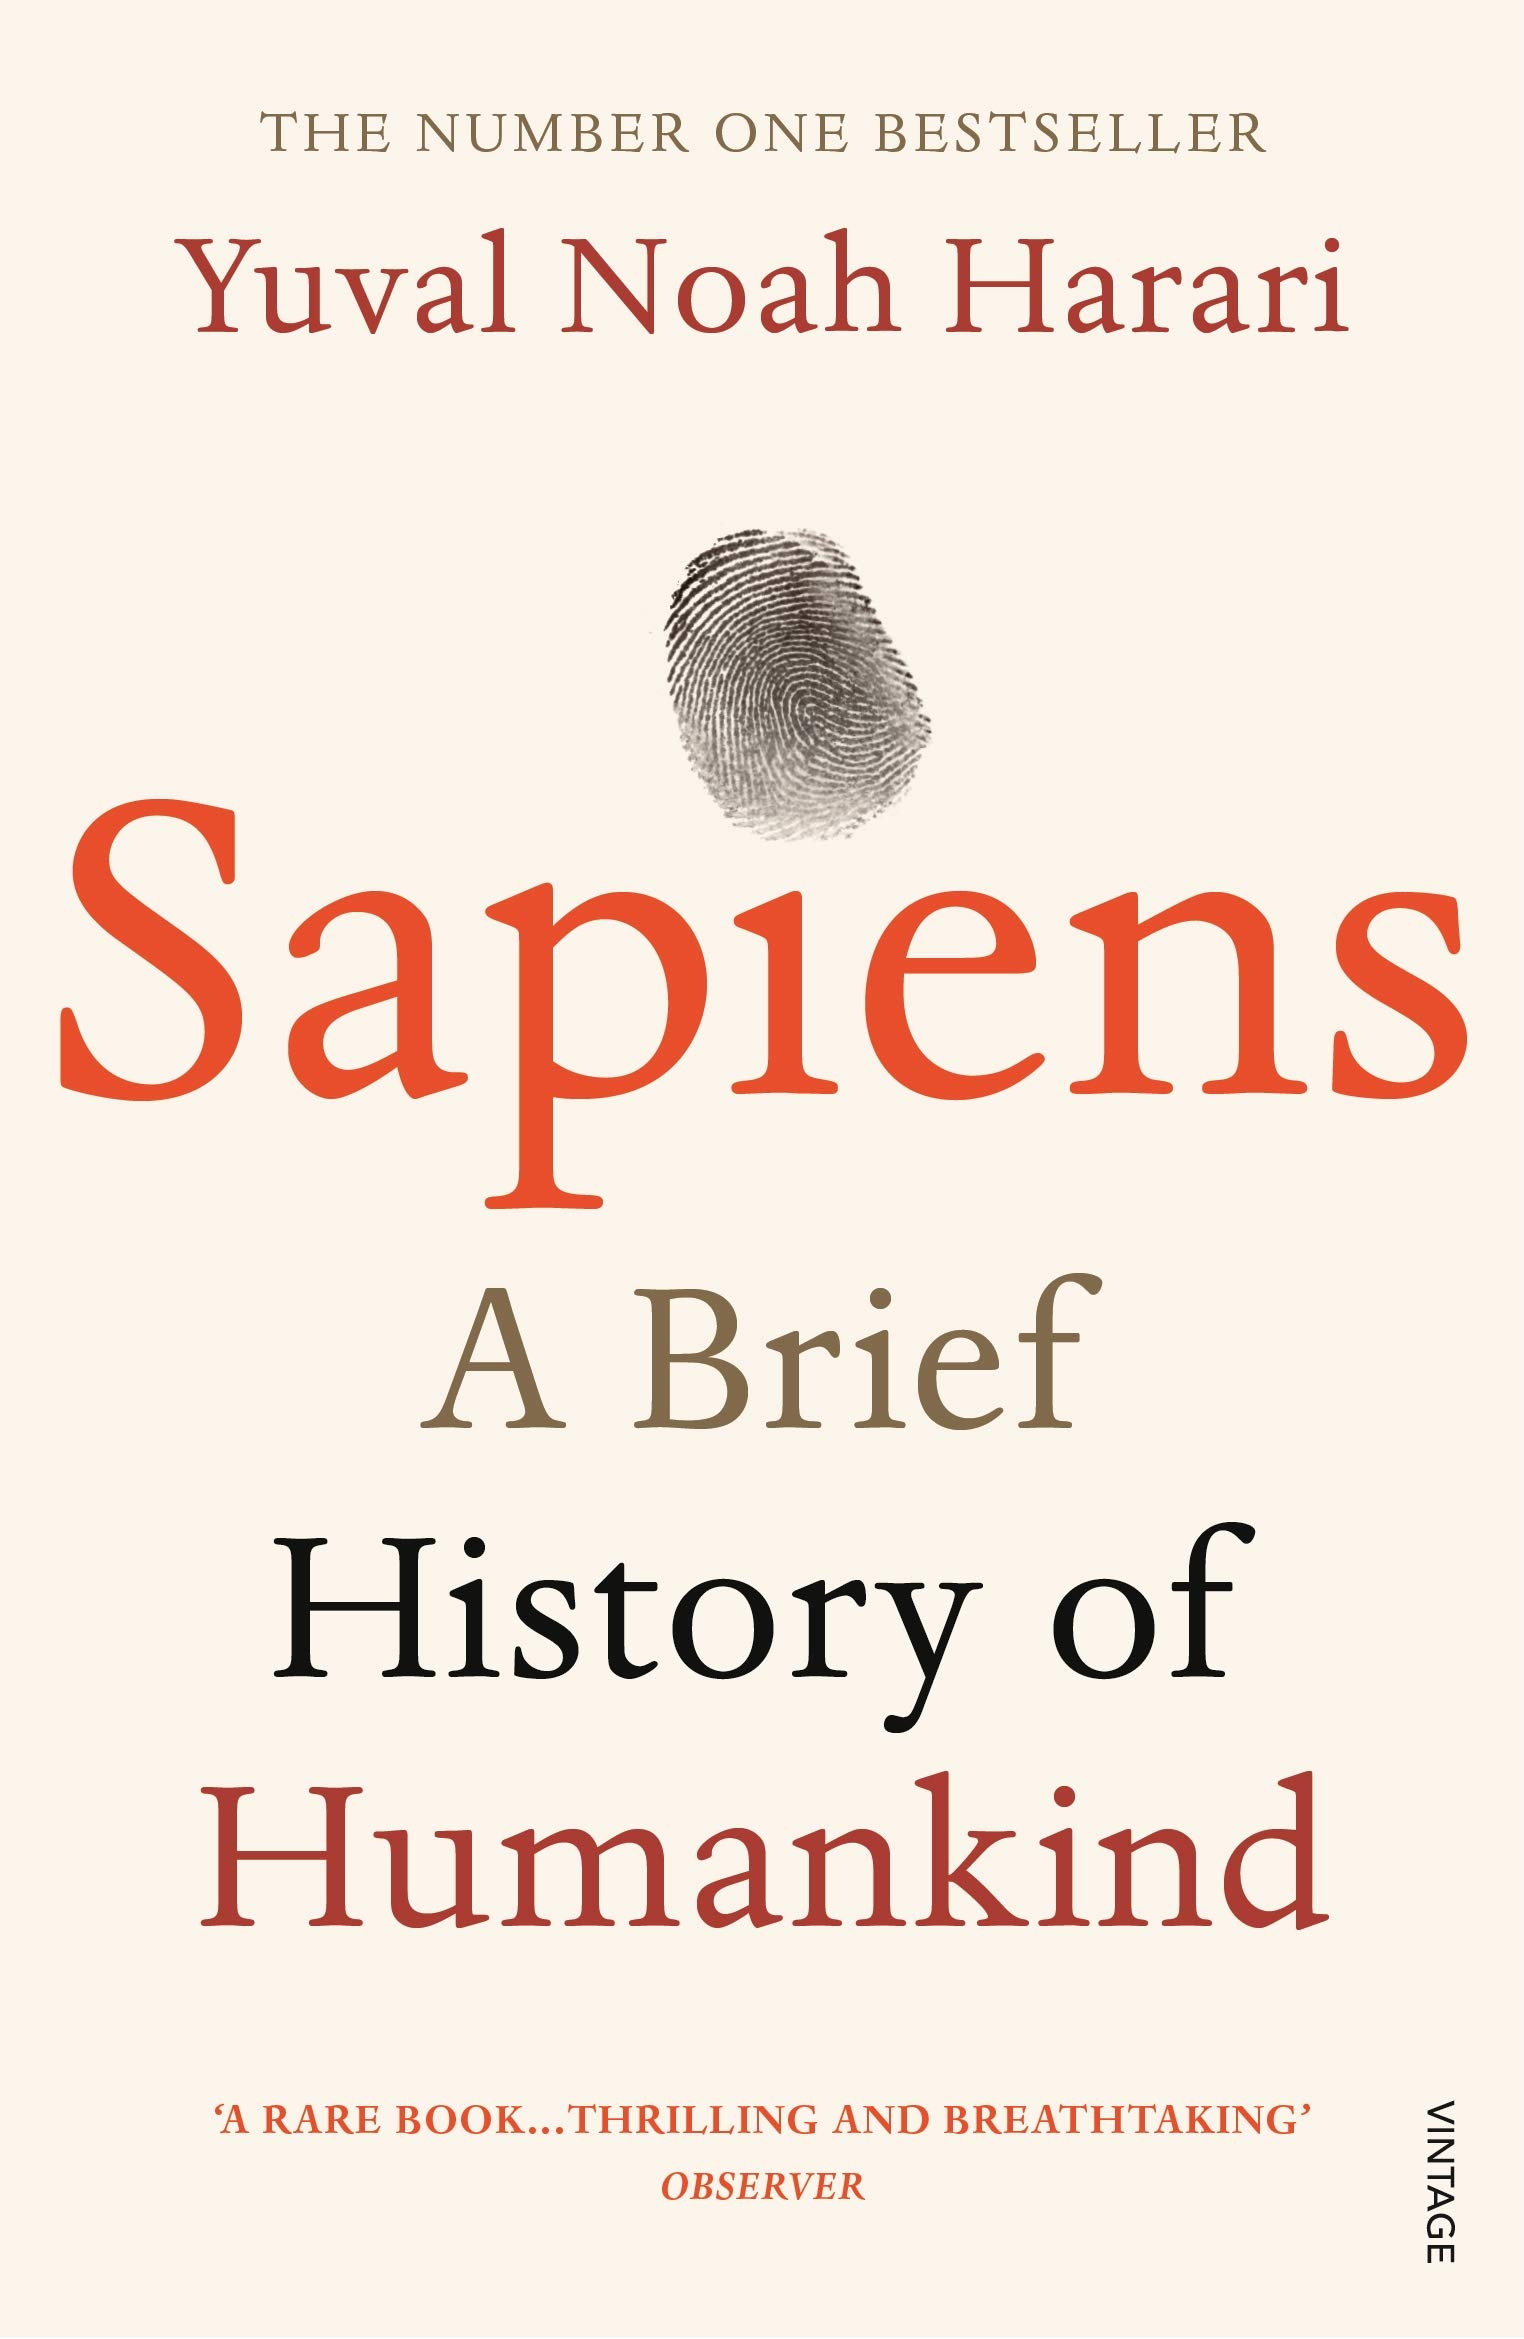 Sapiens: A Brief History of Humankind Paperback – 11 June 2015